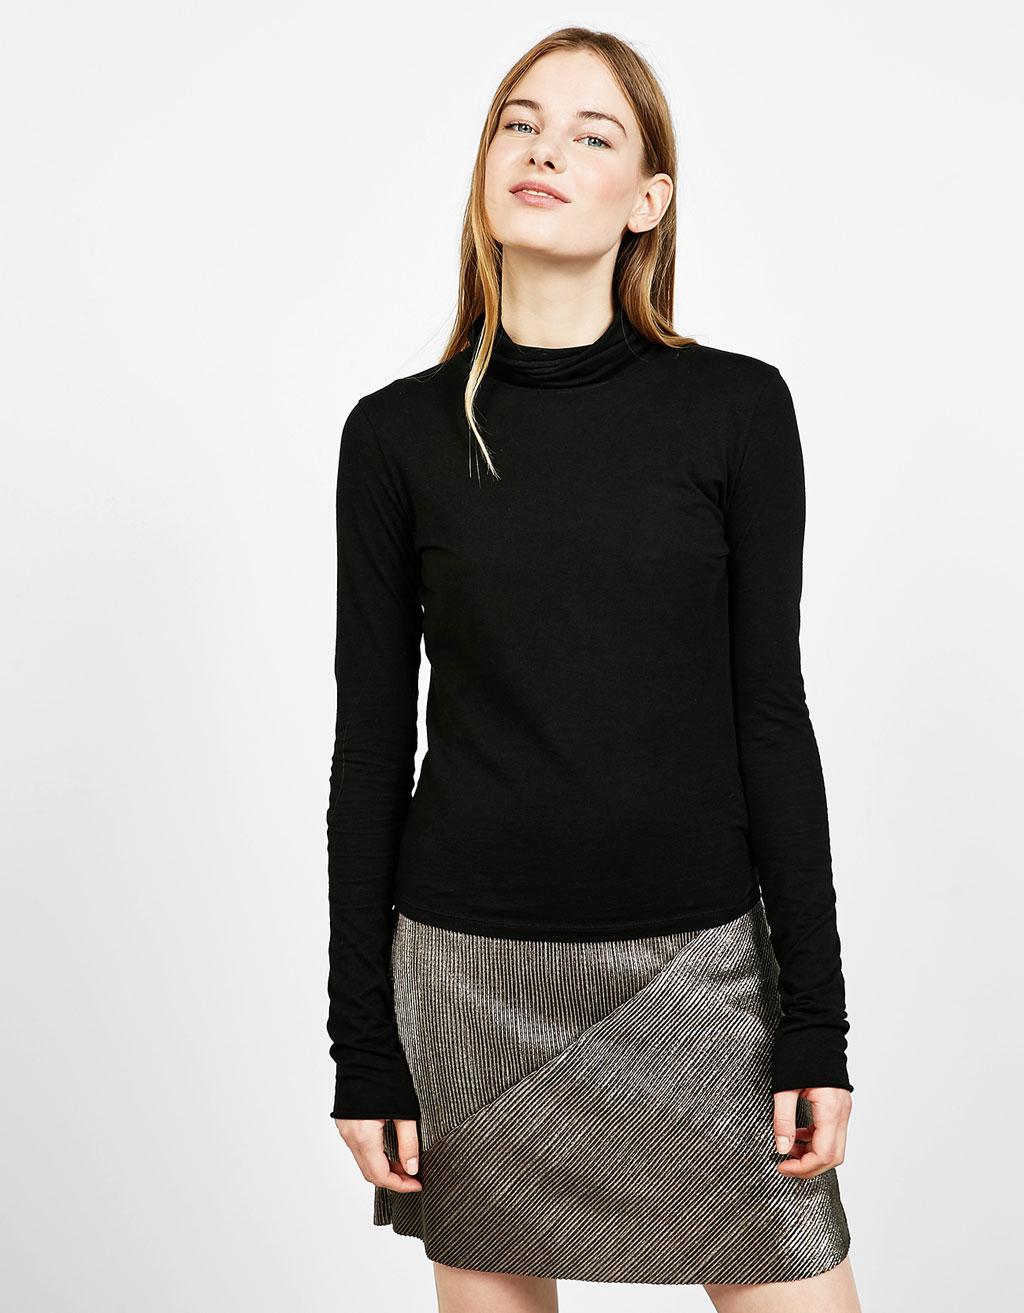 Roll neck top with very long sleeves